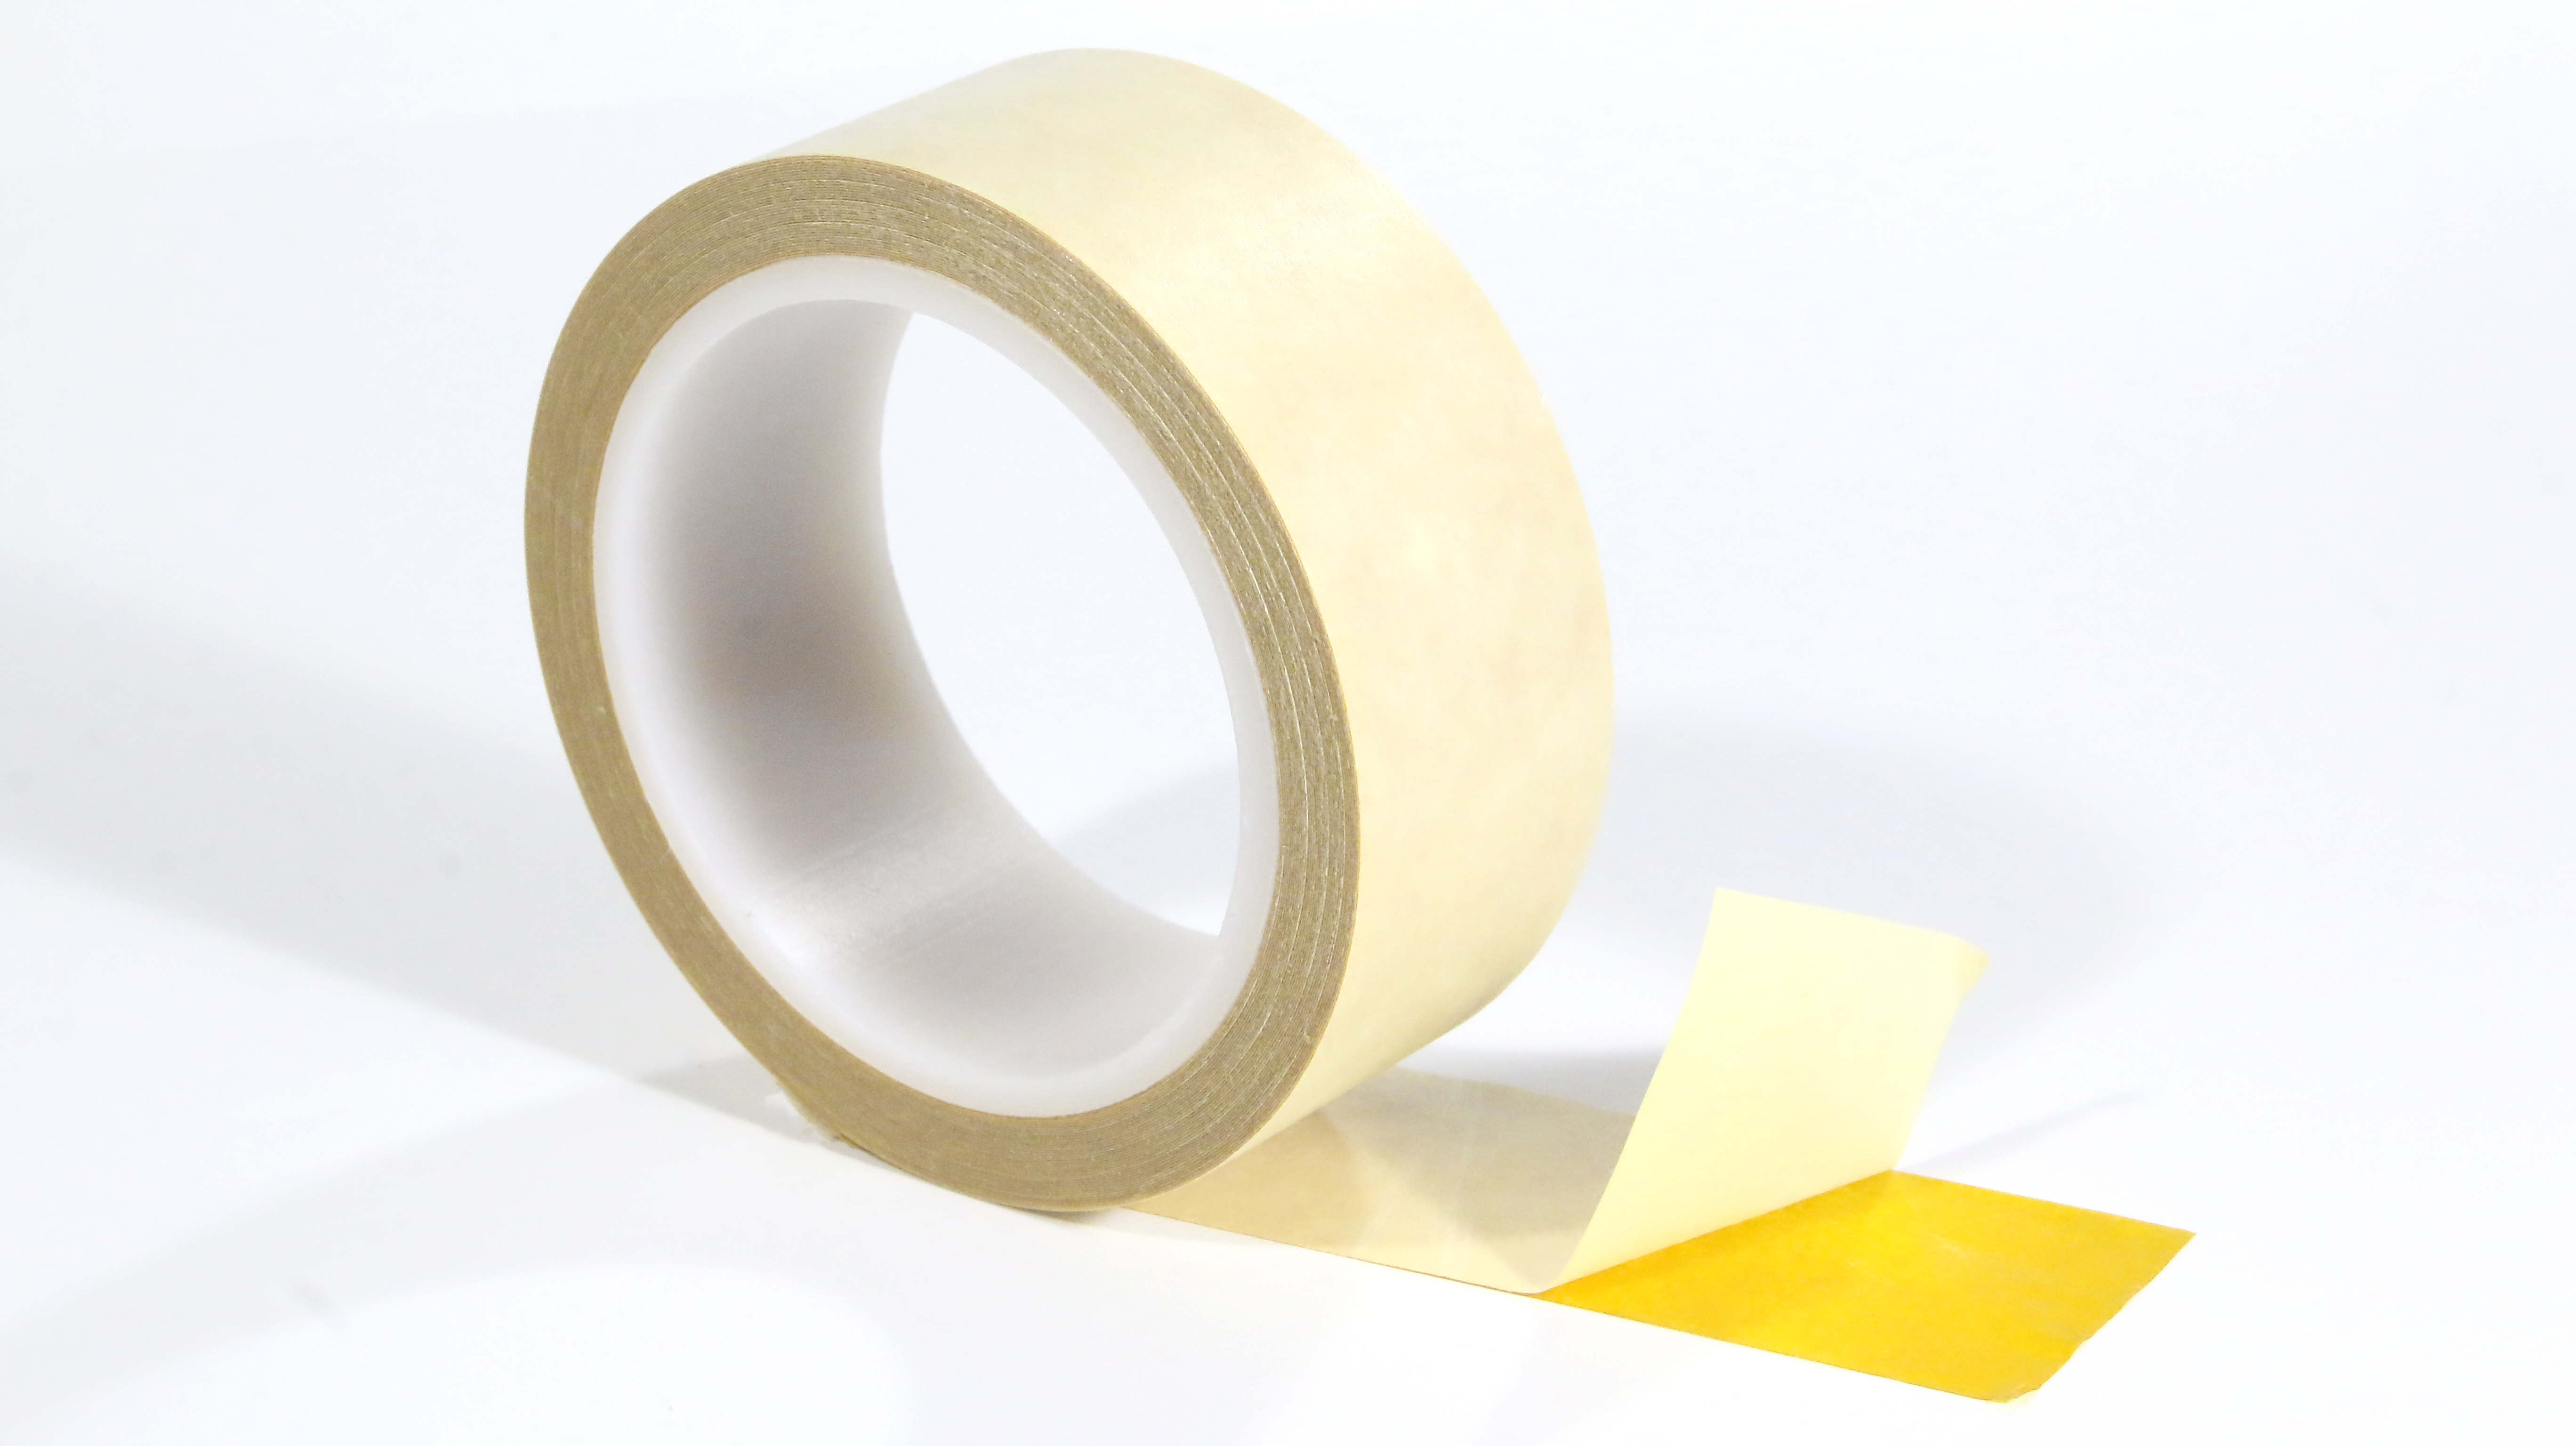 4.125 x 36 Yards Kapton 18-1S Polyimide Tape with Silicone Adhesive